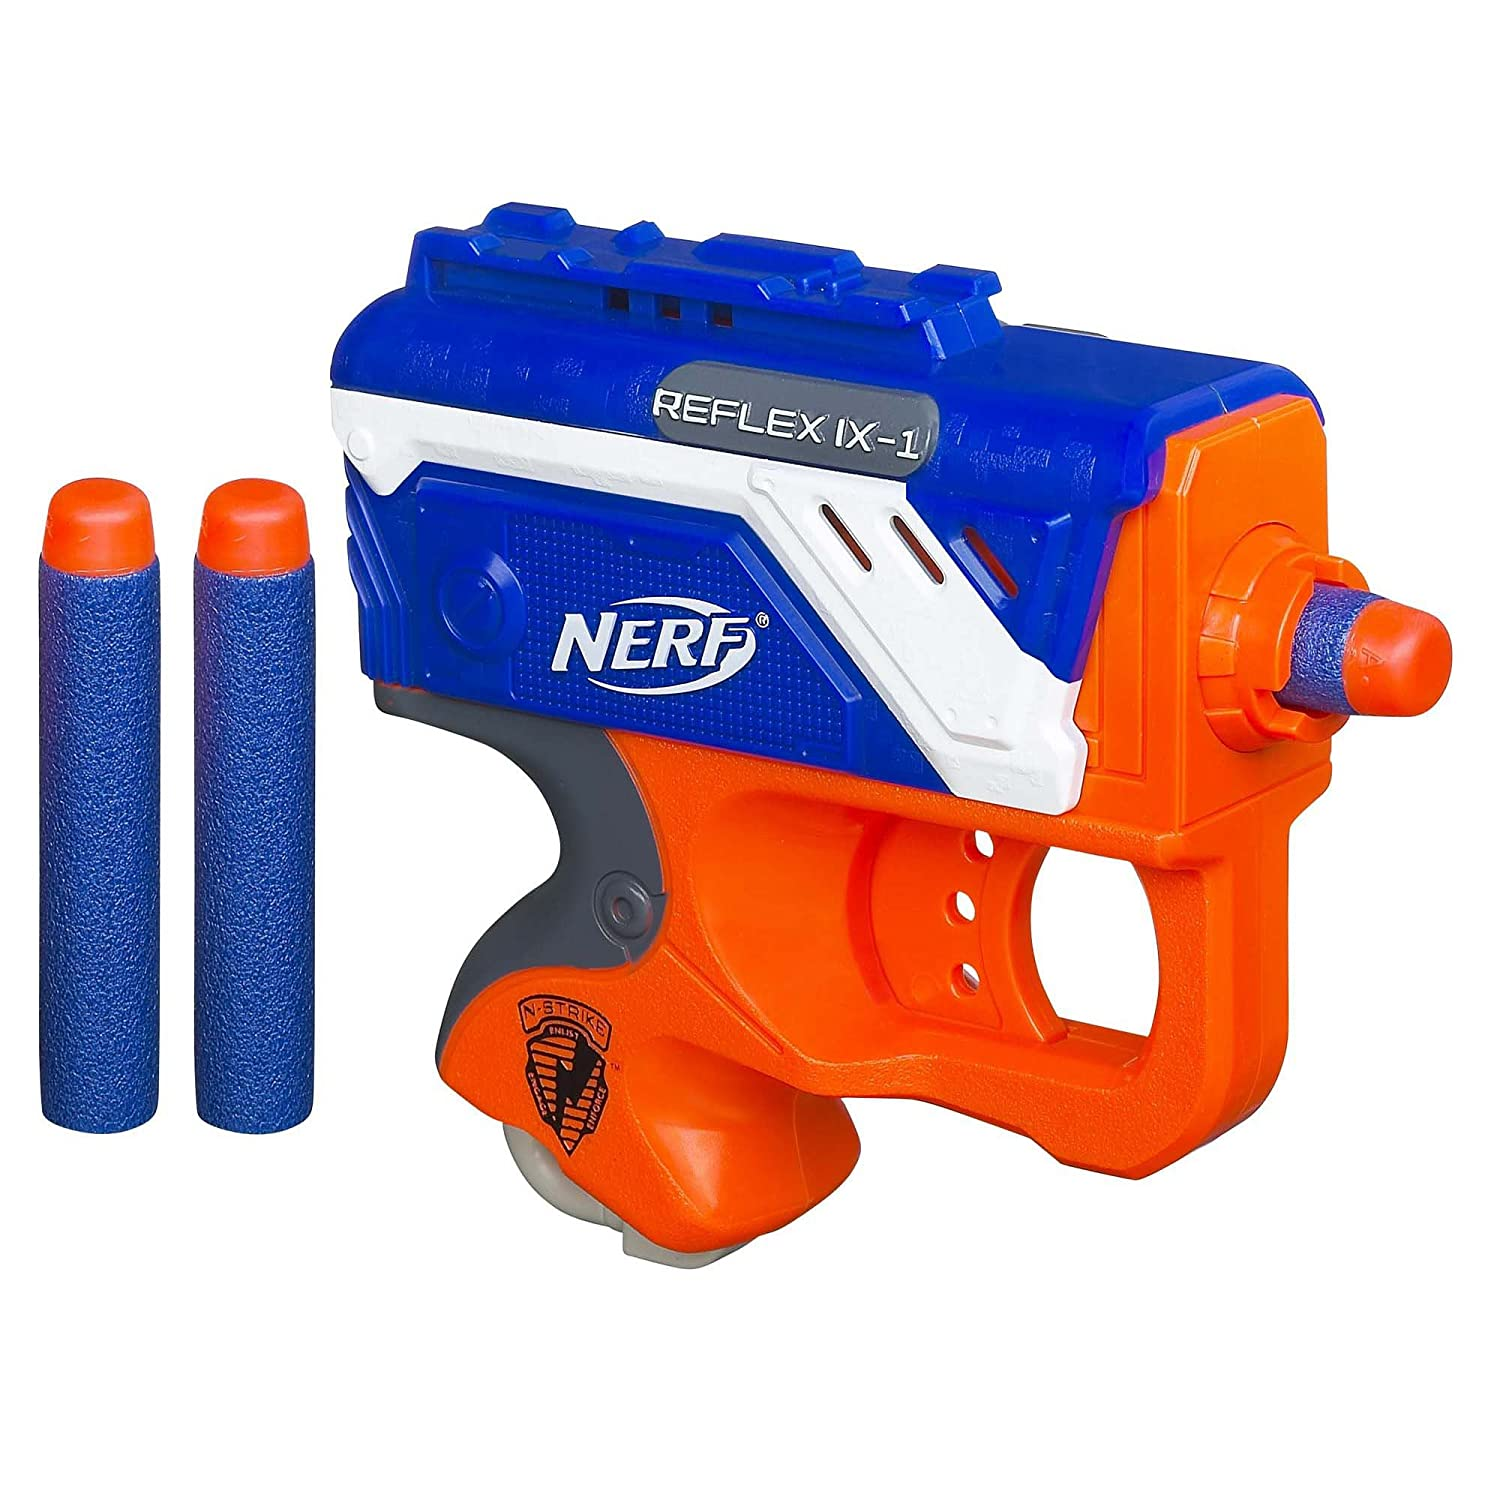 Nerf Rival Nemesis MXVII-10K, Red $88 or $70.40 each if purchasing two (